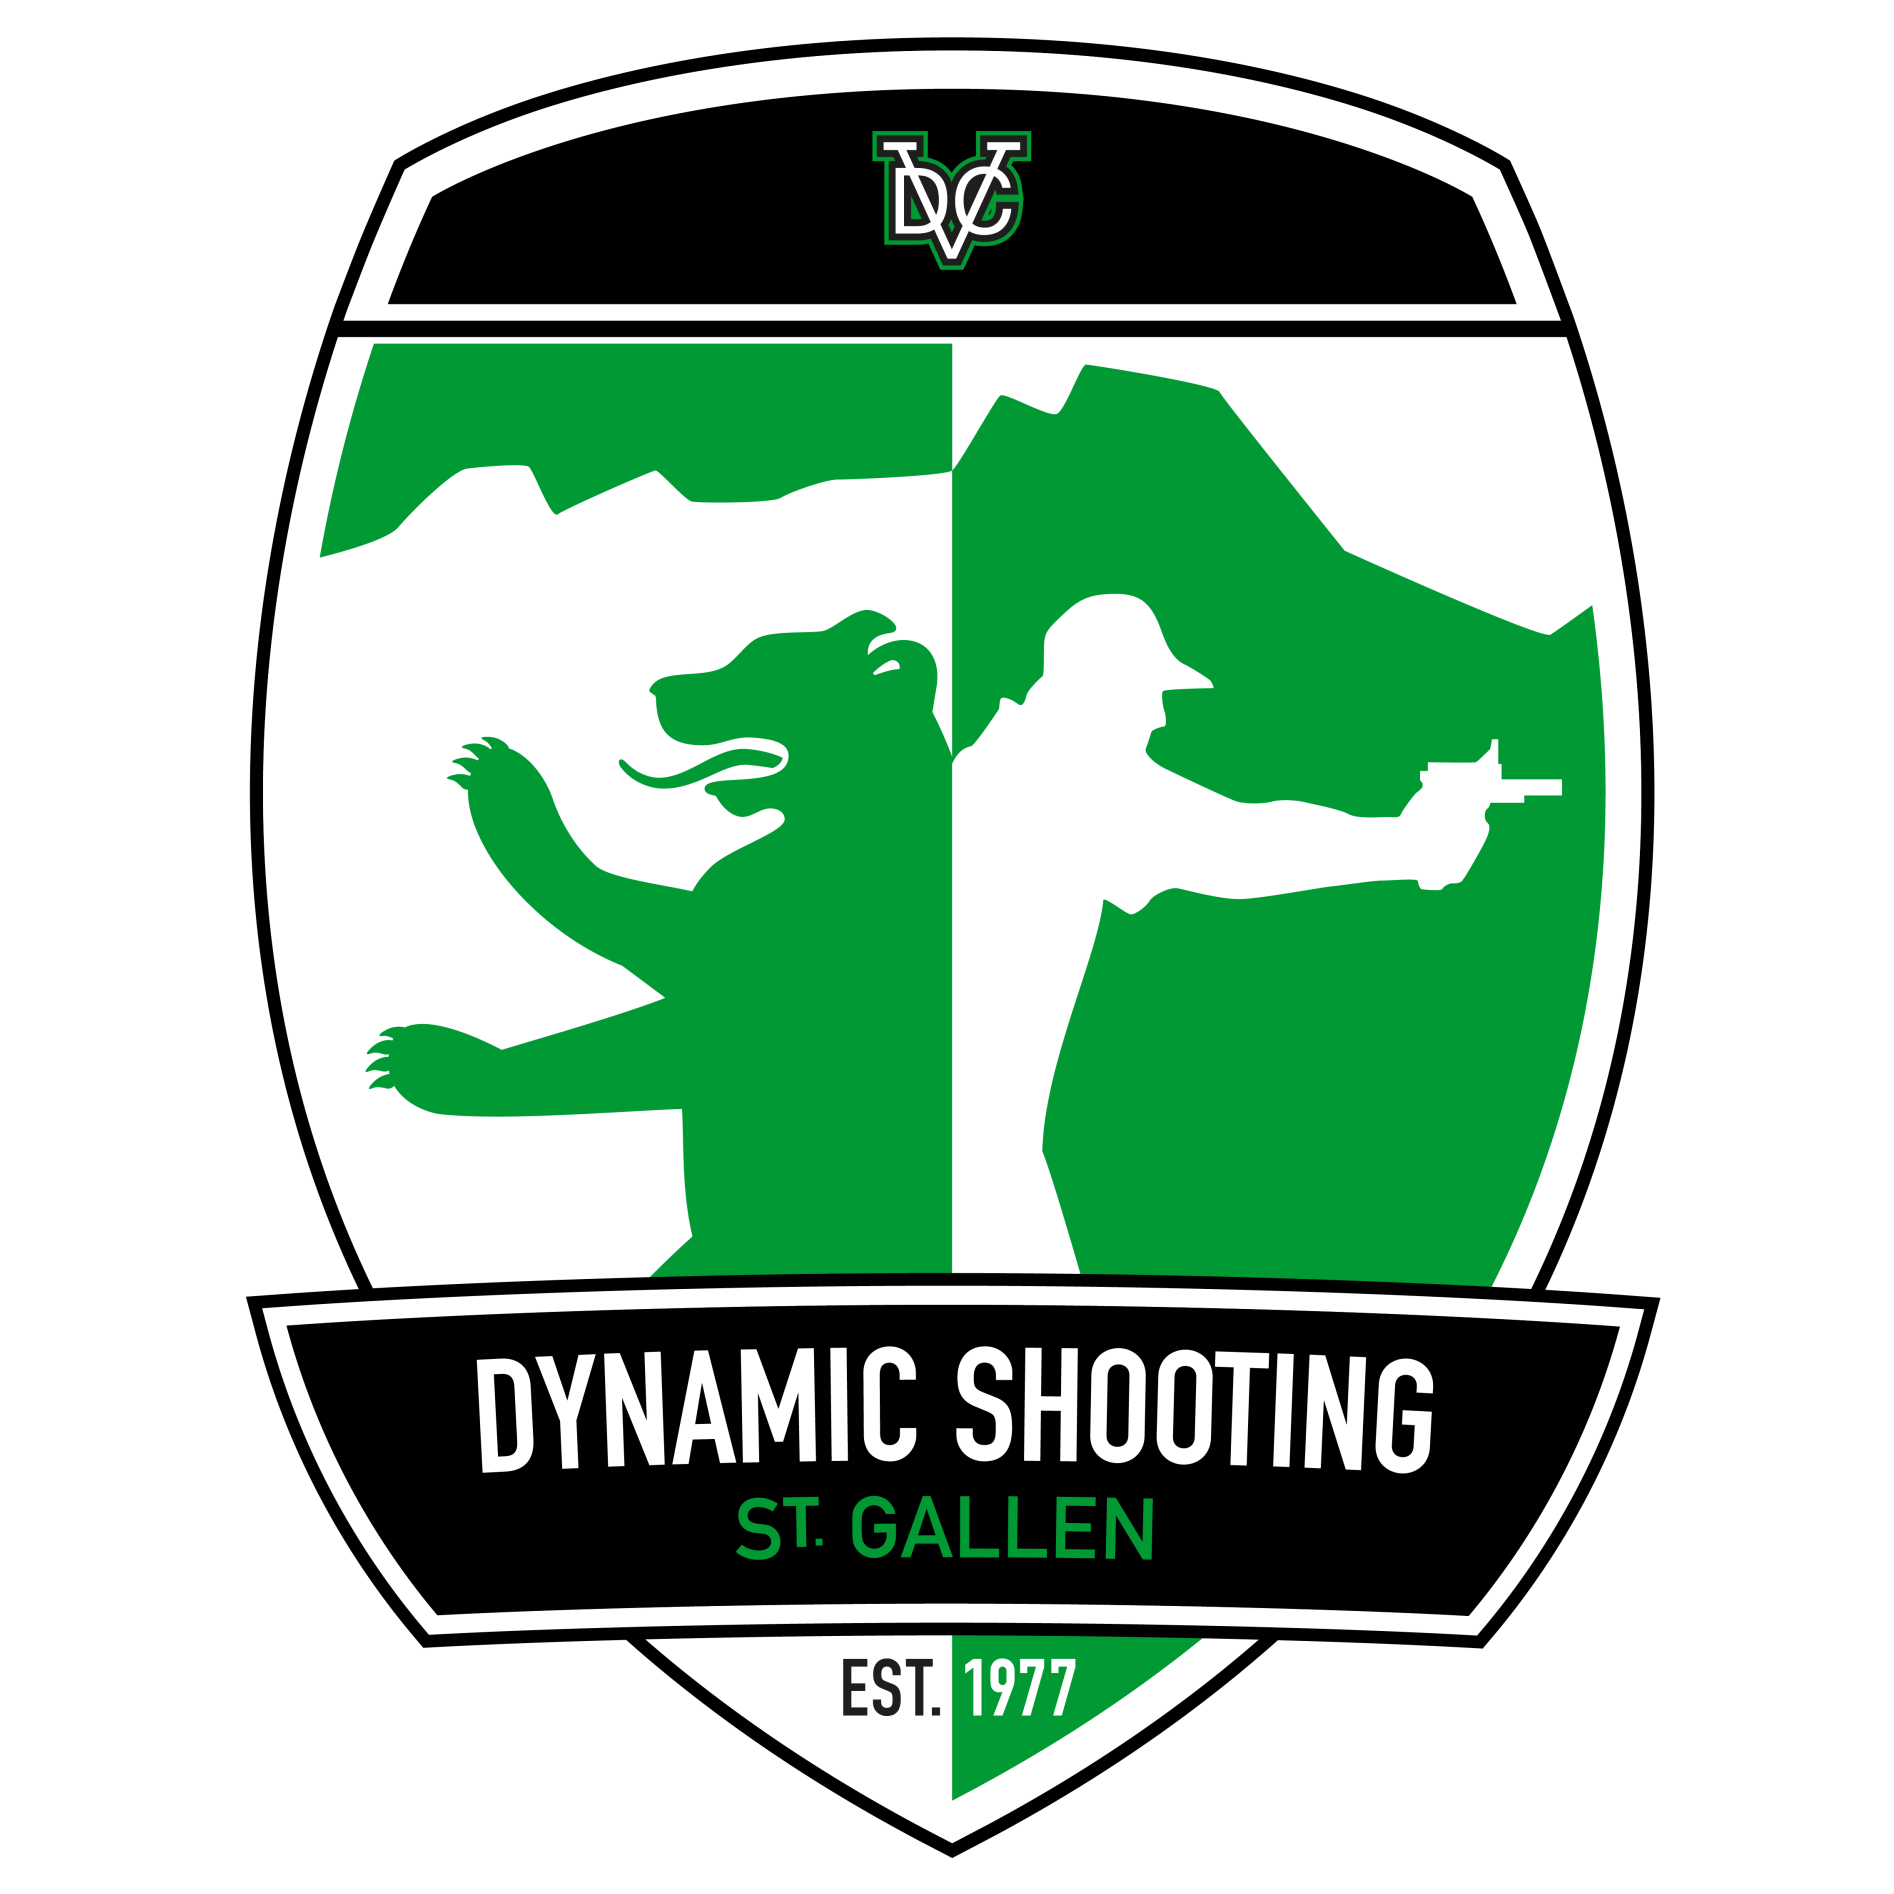 DYNAMIC SHOOTING ST.GALLEN